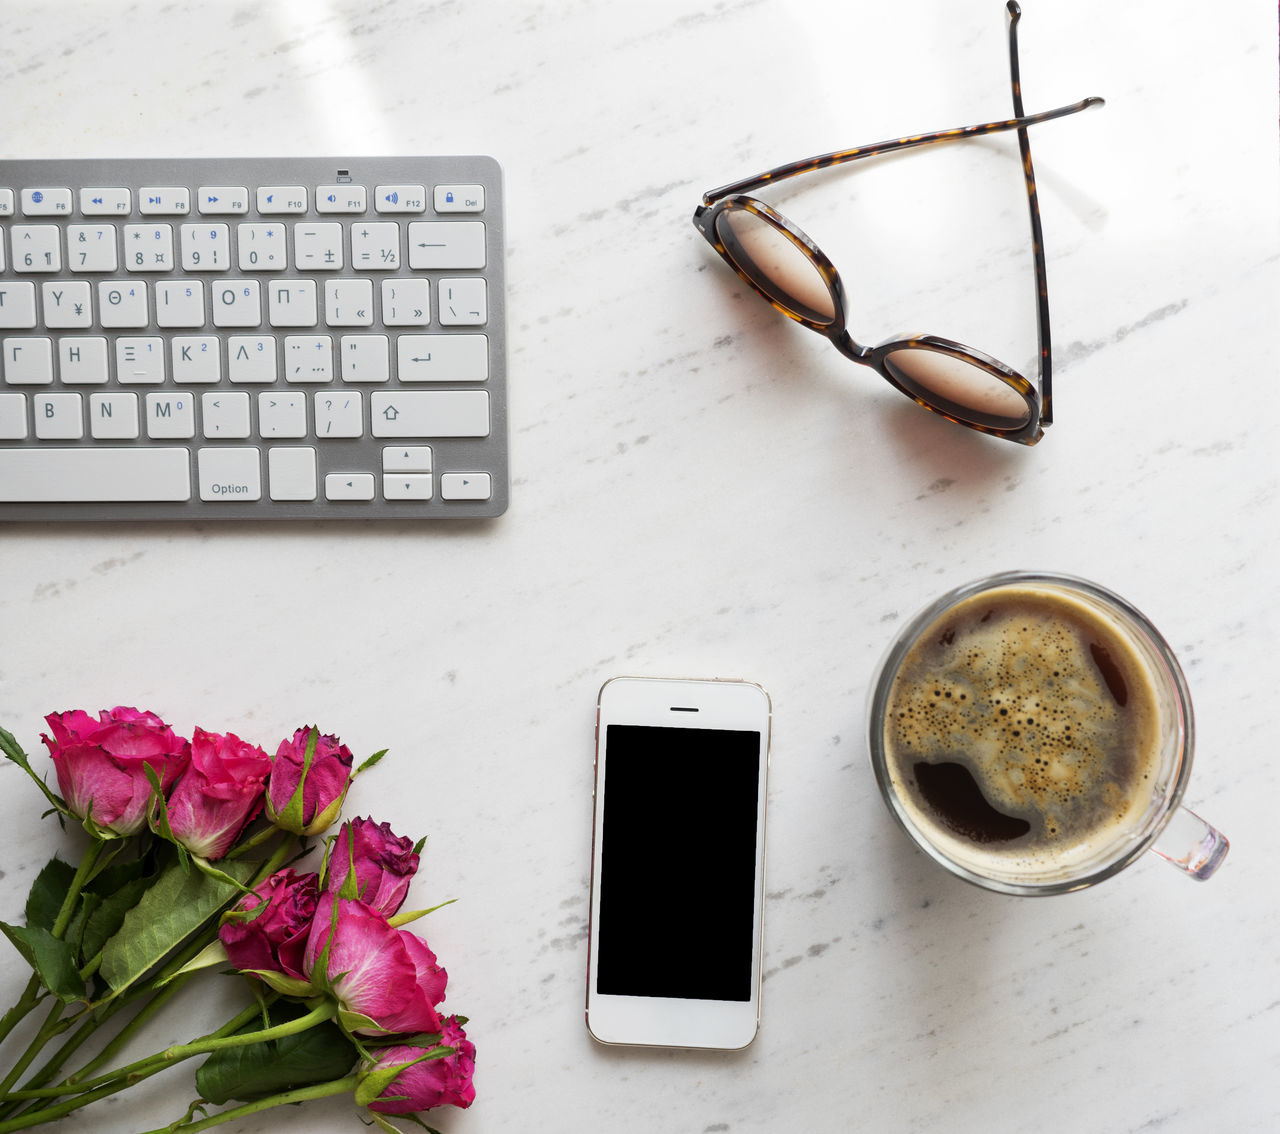 Coffee Coffee - Drink Coffee Cup Computer Computer Keyboard Desk Flower Keyboard Marble Mobile Phone Morning Light Office Office Phone Roses Smartphone Sunglasses Table Top View Work